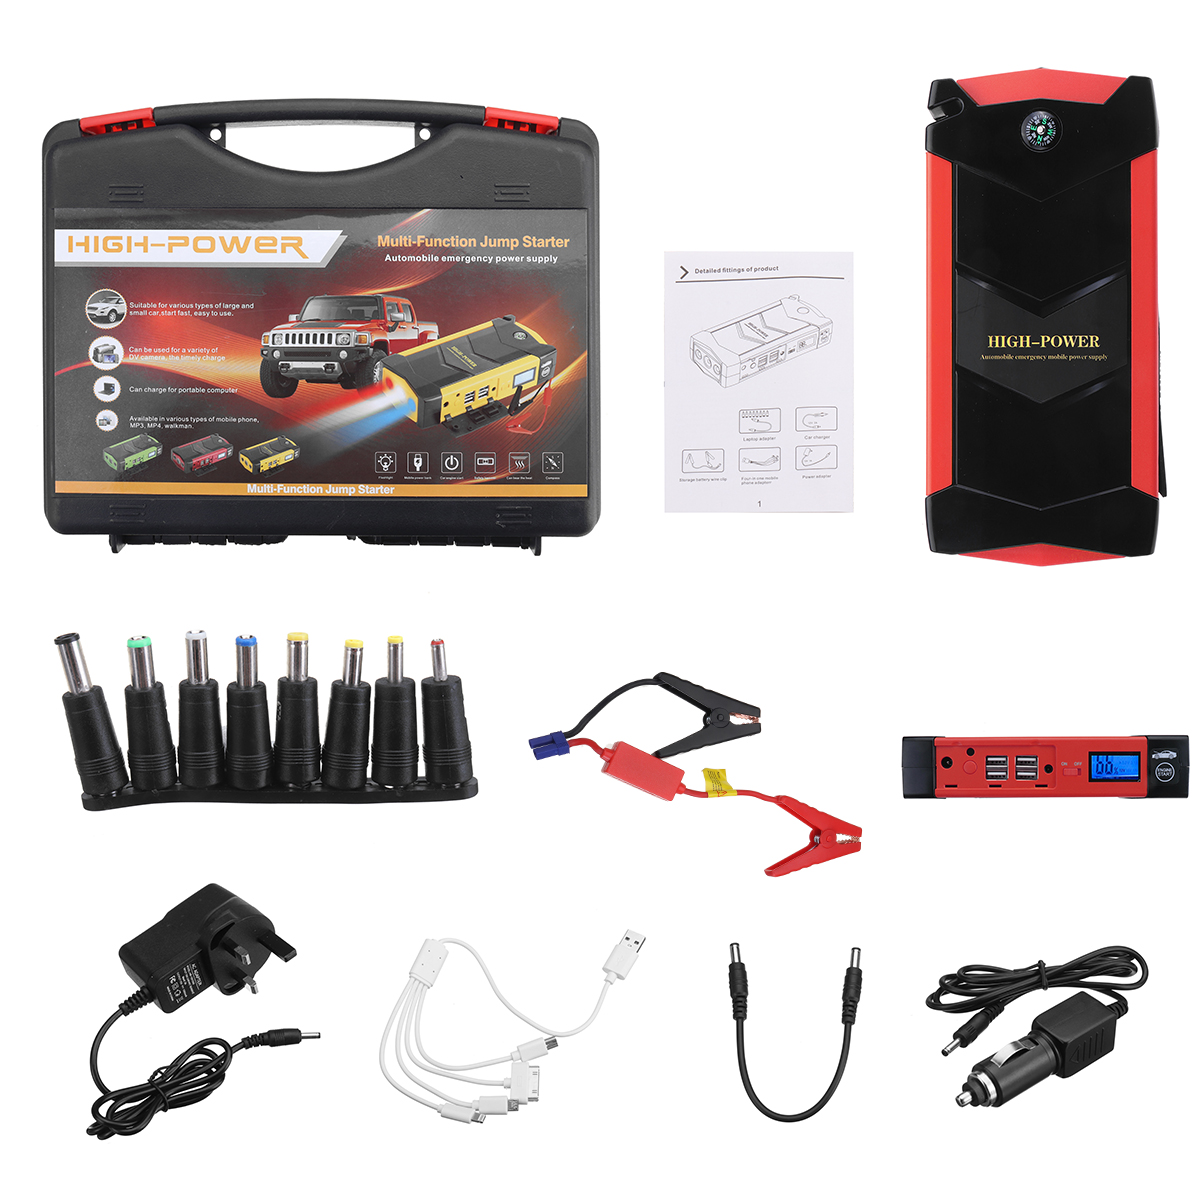 12V 82800mAh Car Jump Starter Booster Power Bank 4USB Car Battery Charger Starting Tool Kit For Car Starting Device car jump starter emergency 69800mah 12v starting device 4usb sos light mobile power bank car charger for car battery booster led